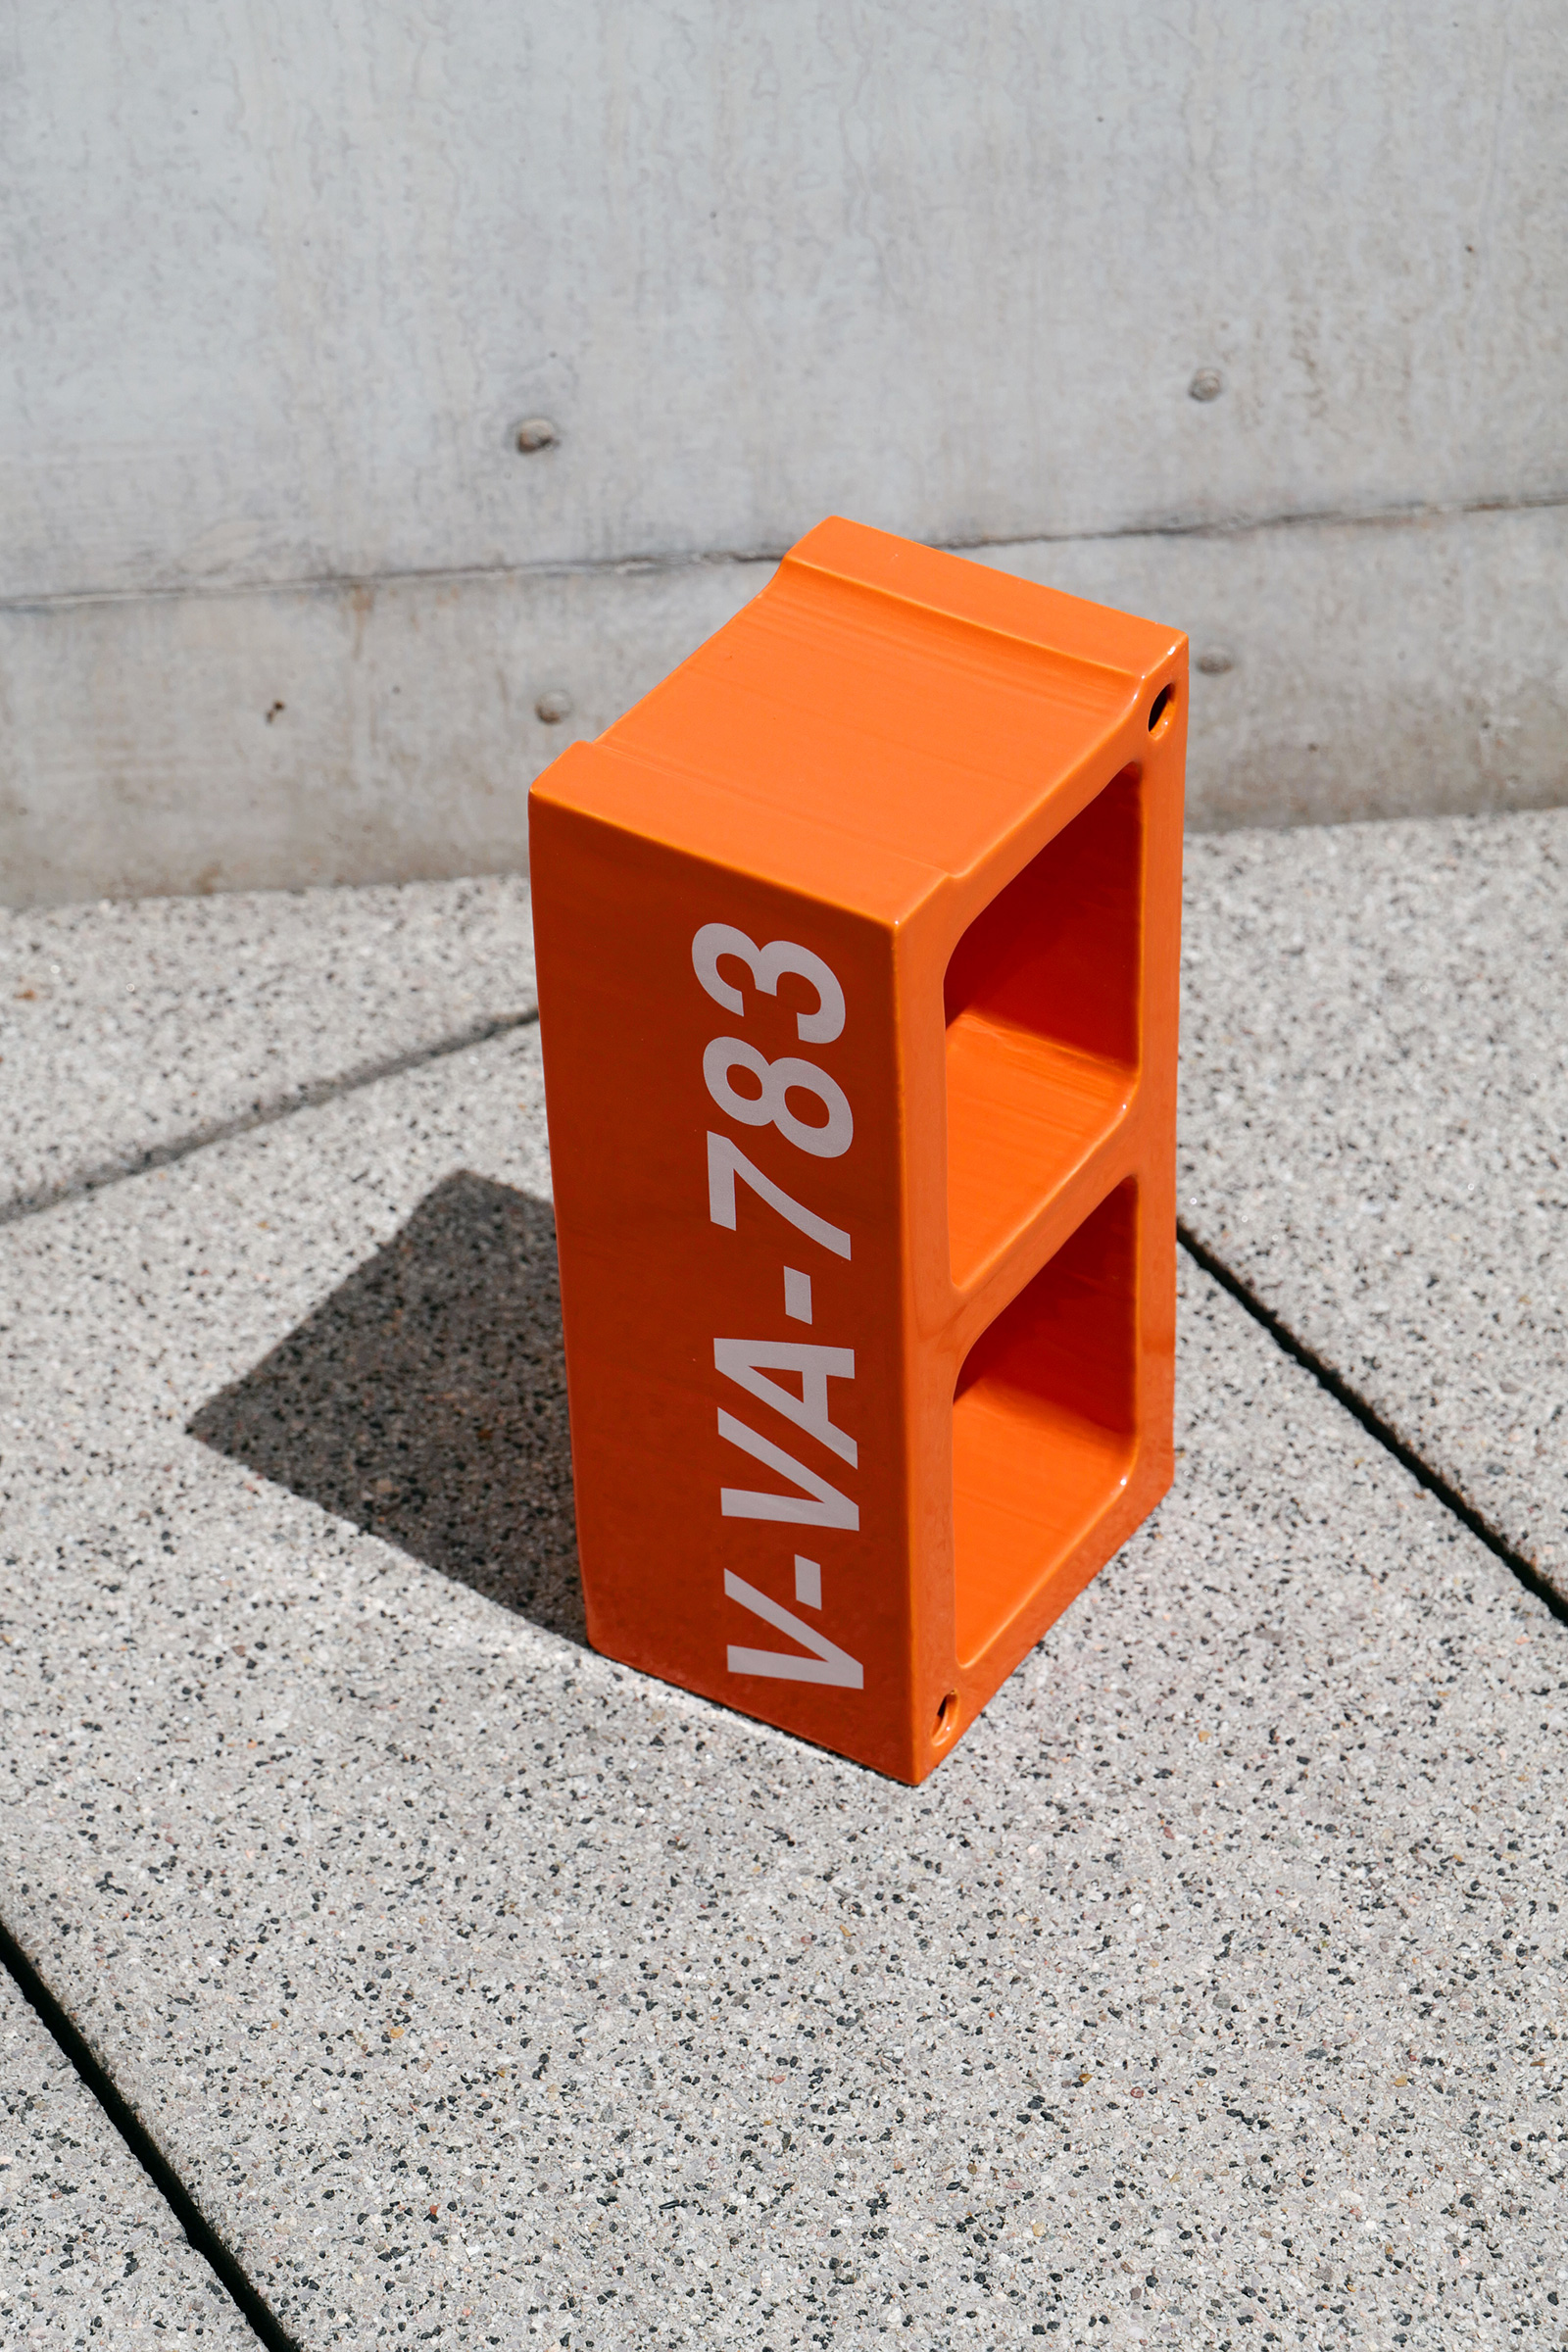 Each ceramic block created by Virgil Abloh comes with its own identifying number | TWENTYTHIRTYFIVE| Virgil Abloh| Vitra| STIR